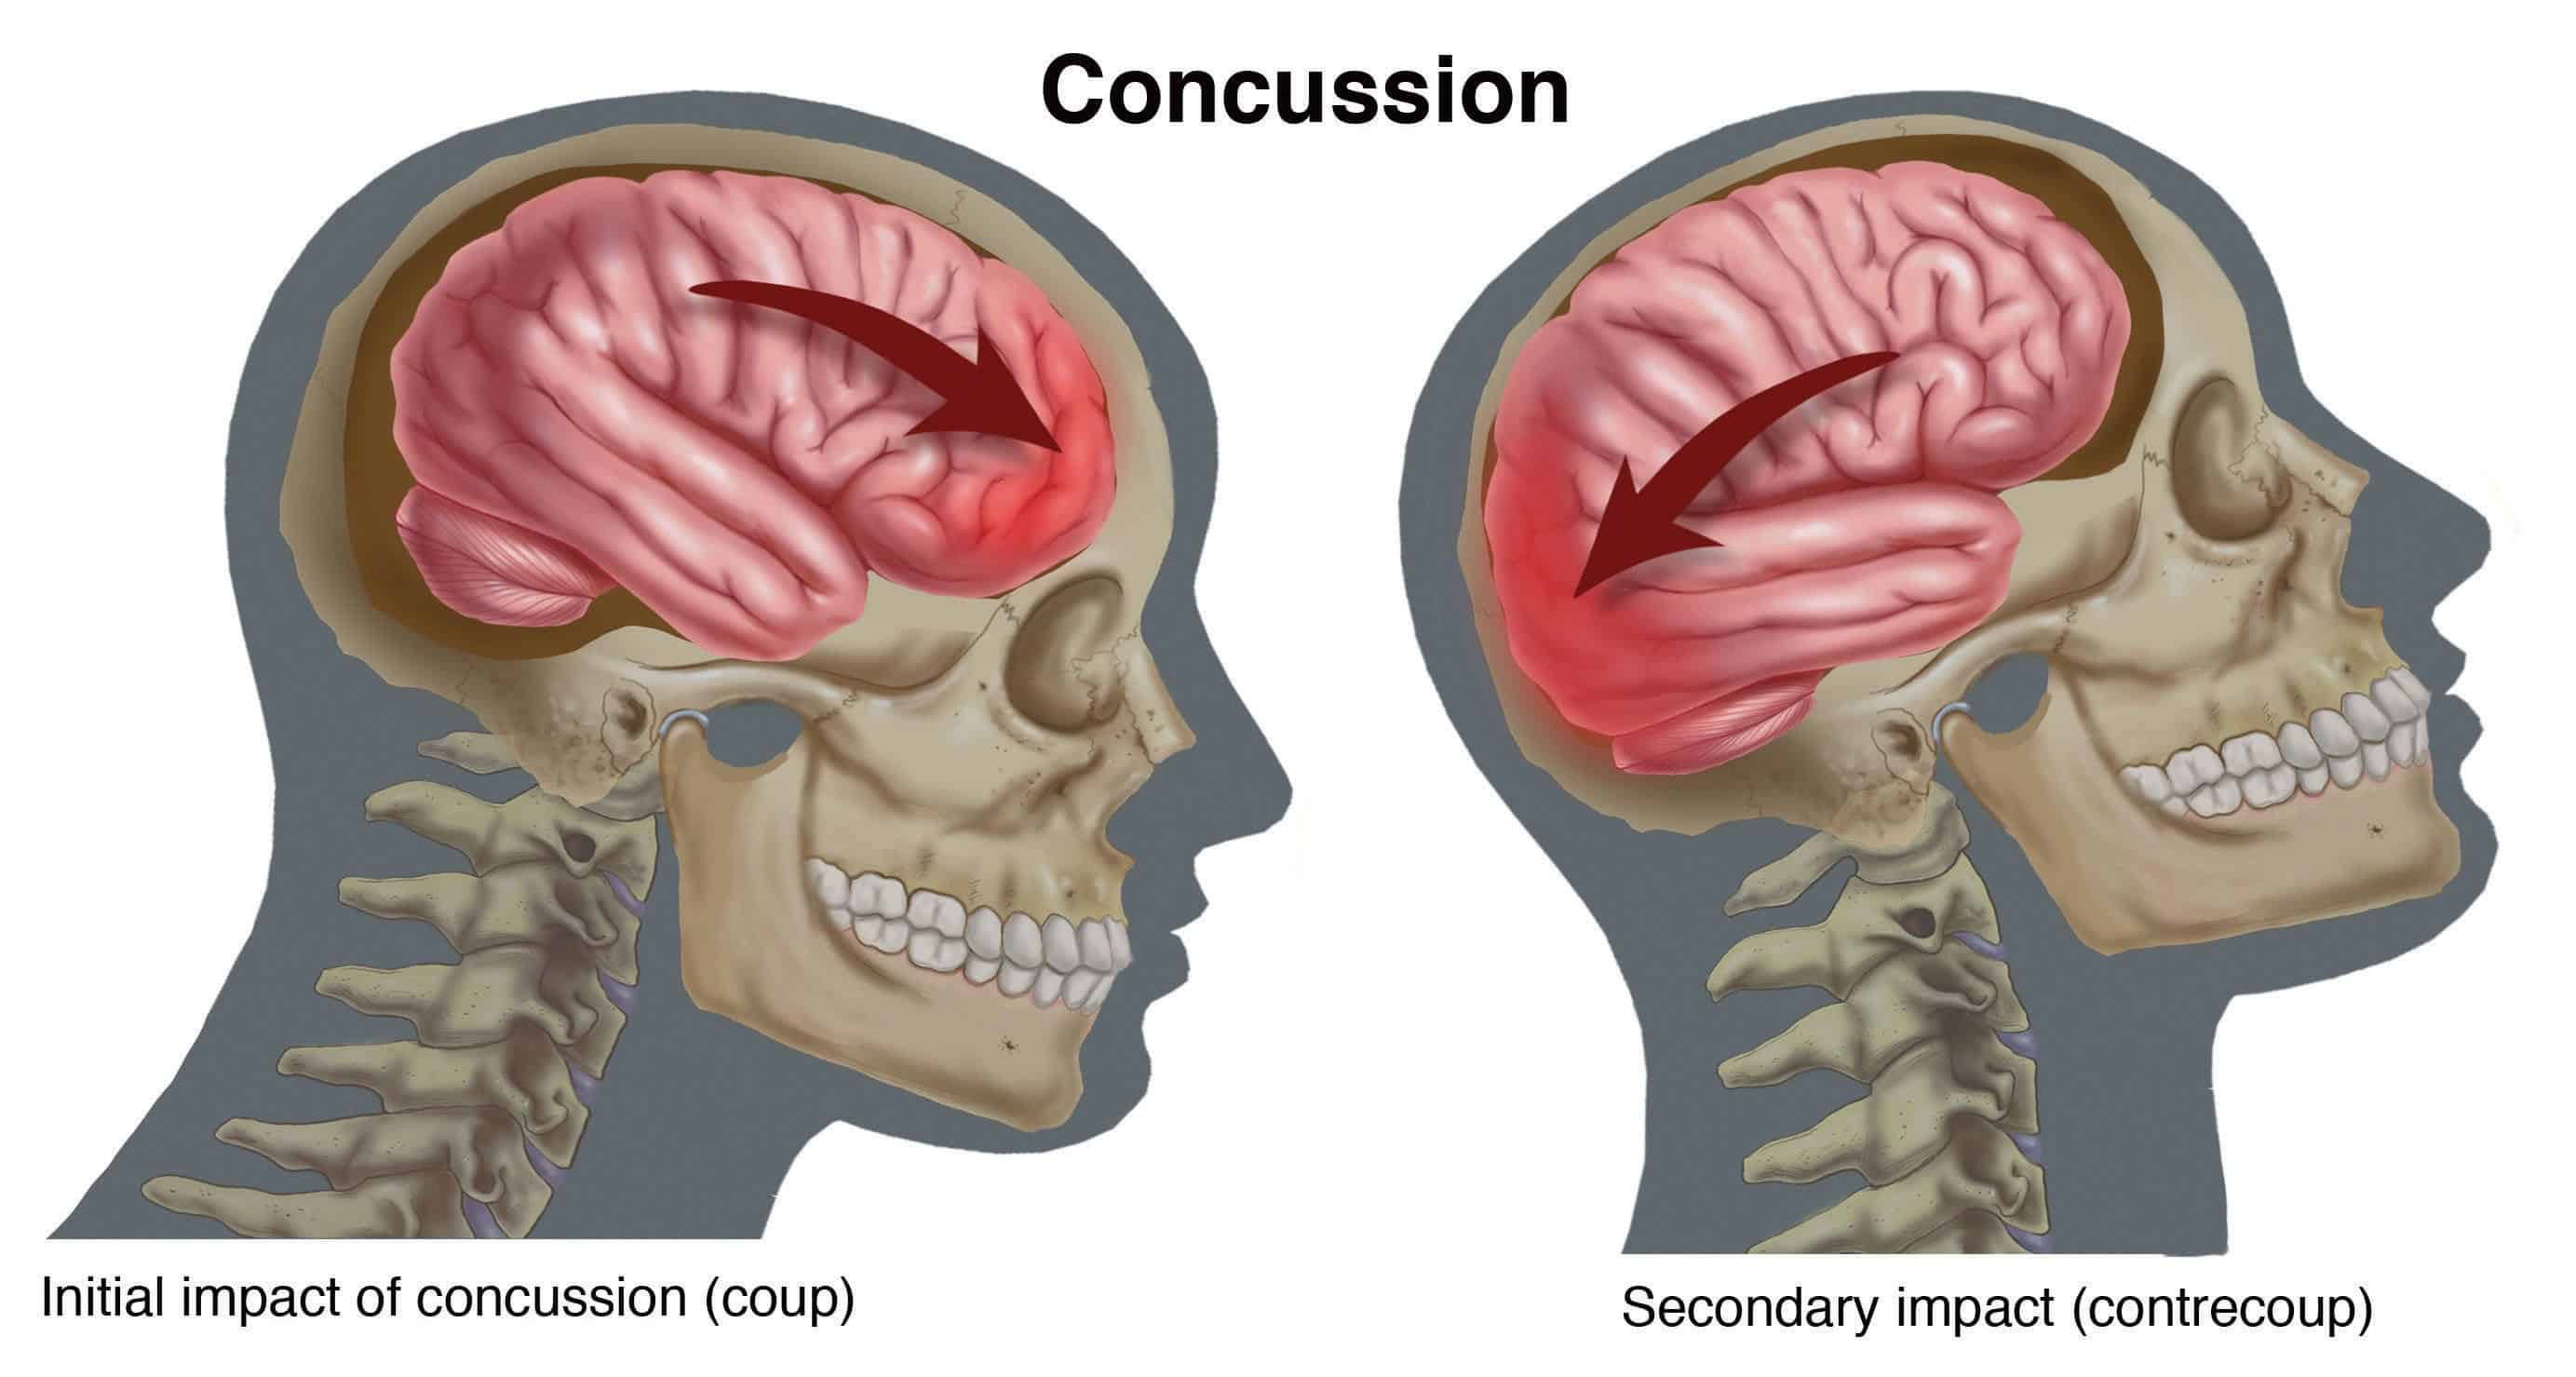 Women Are More Prone To Severe Concussions